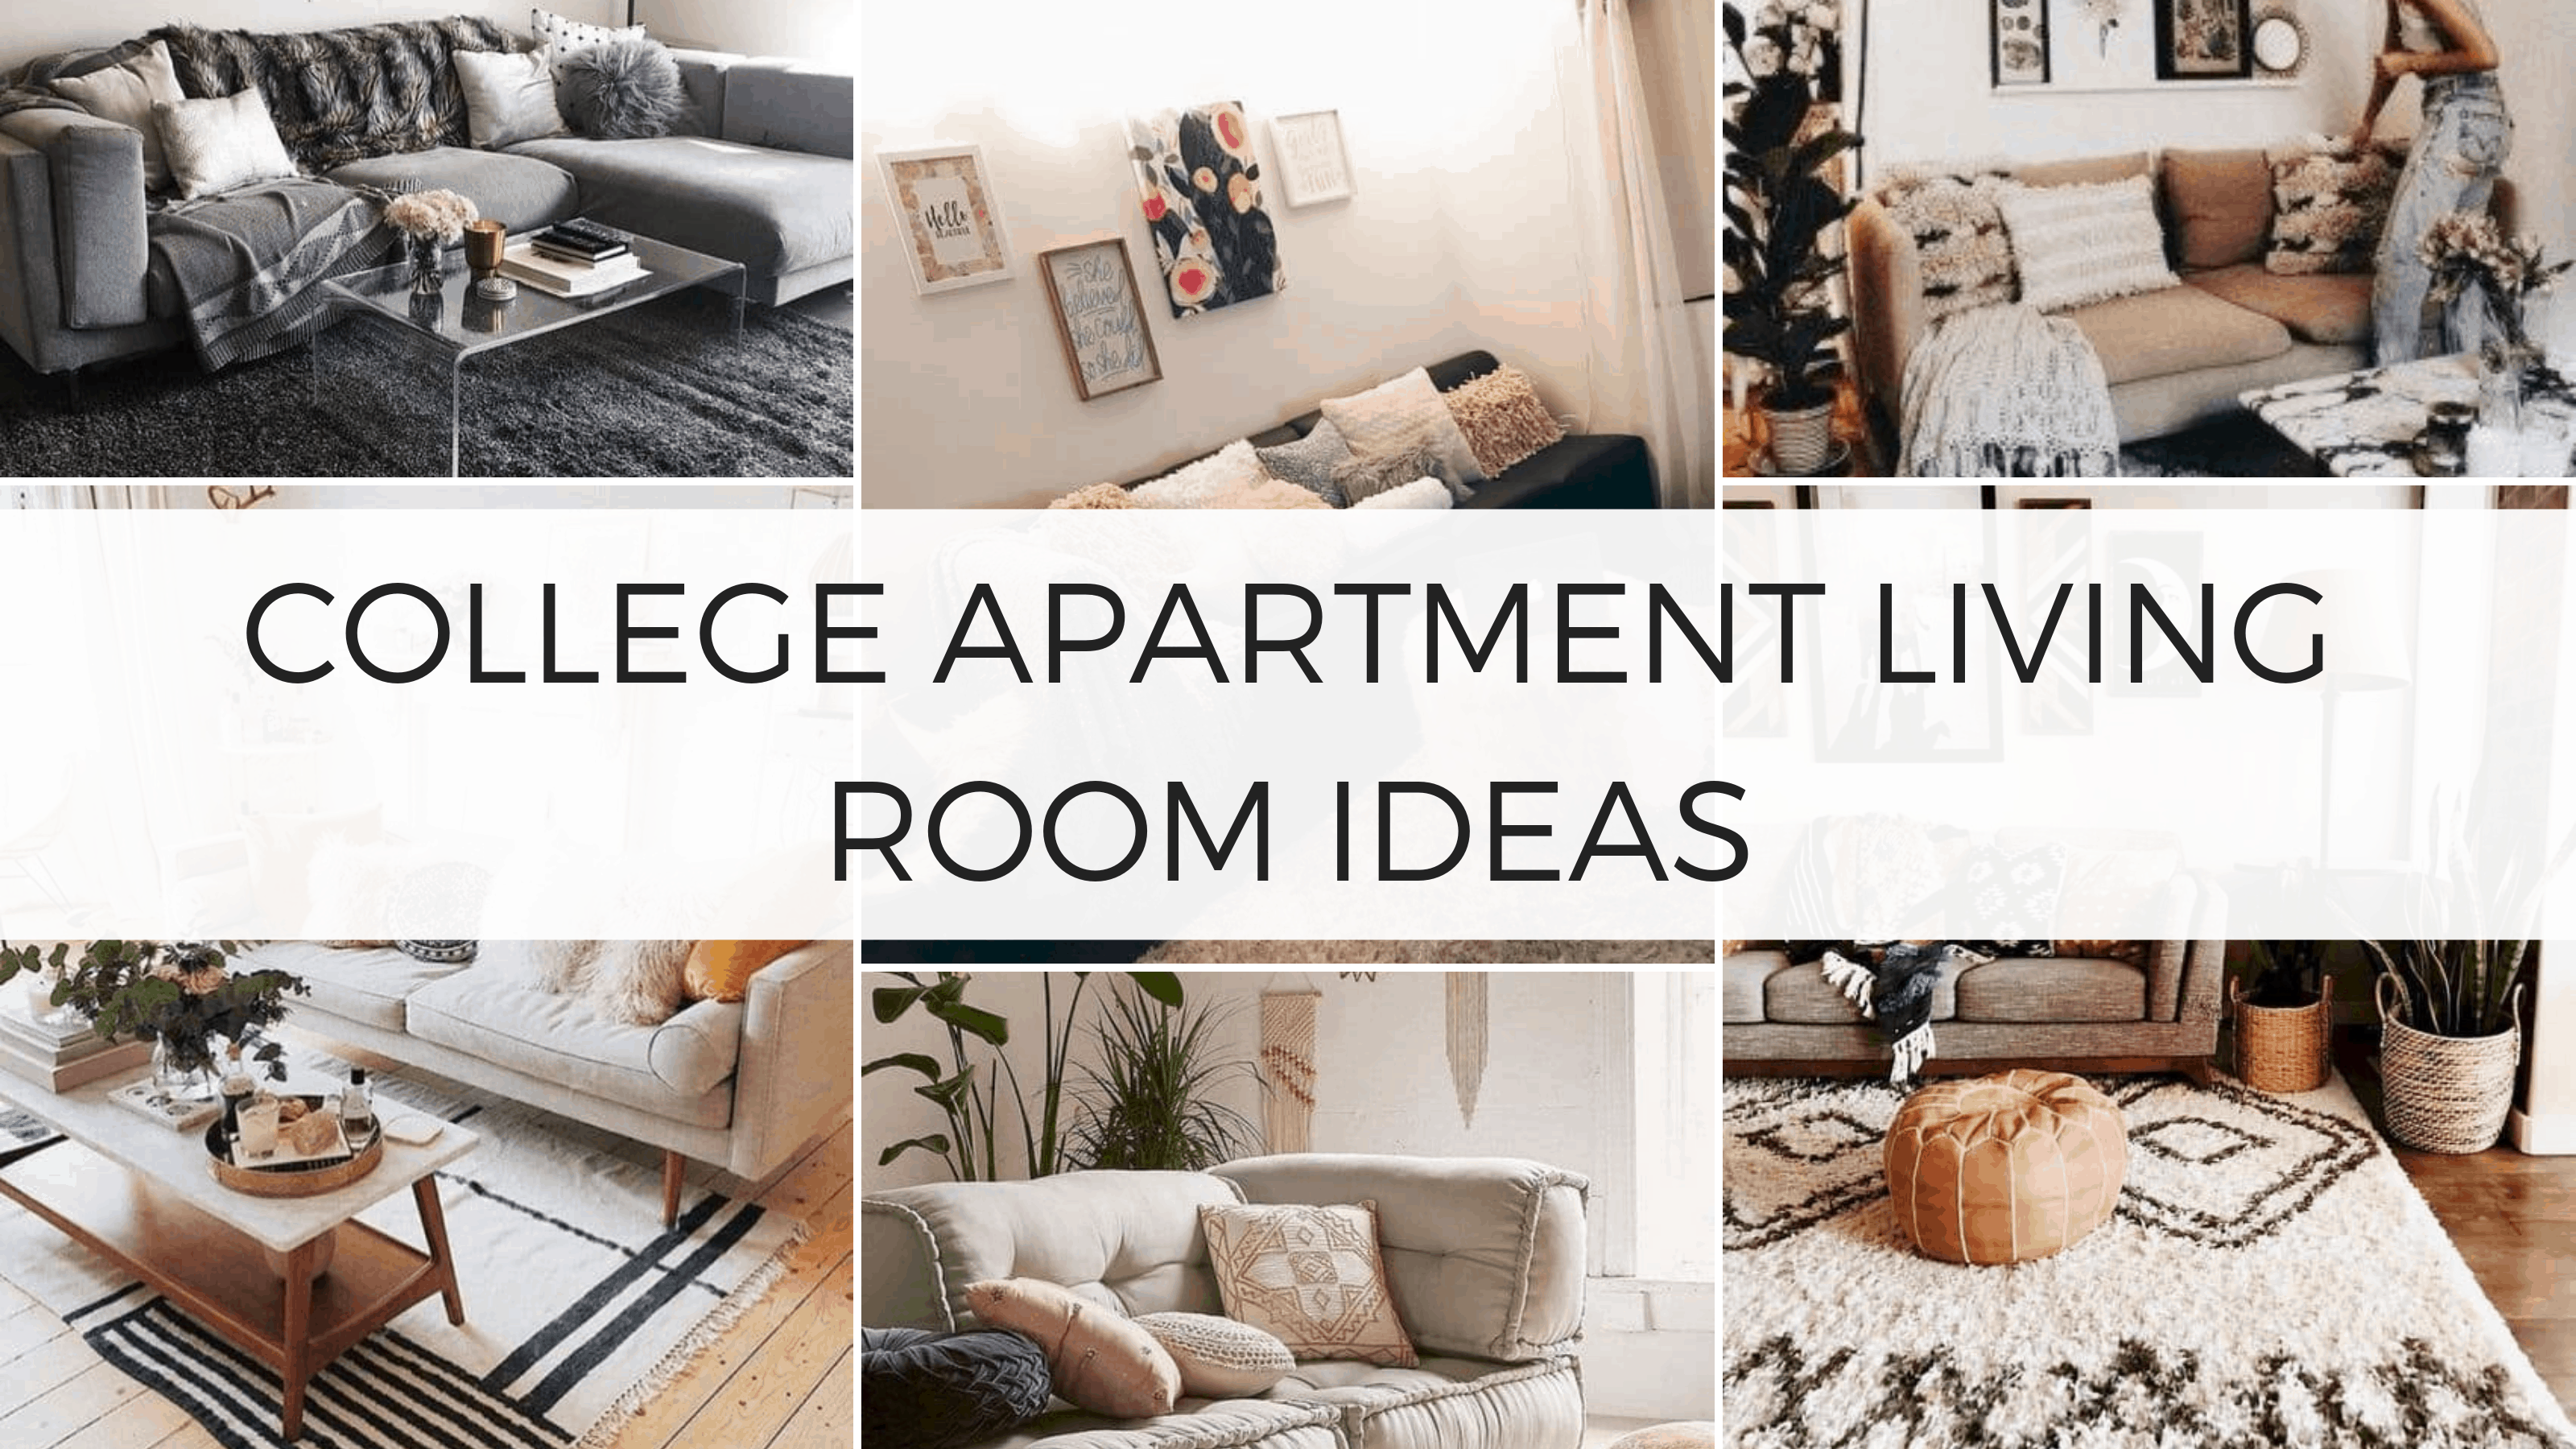 26 Insanely Cute College Apartment Living Room Ideas To Copy ...